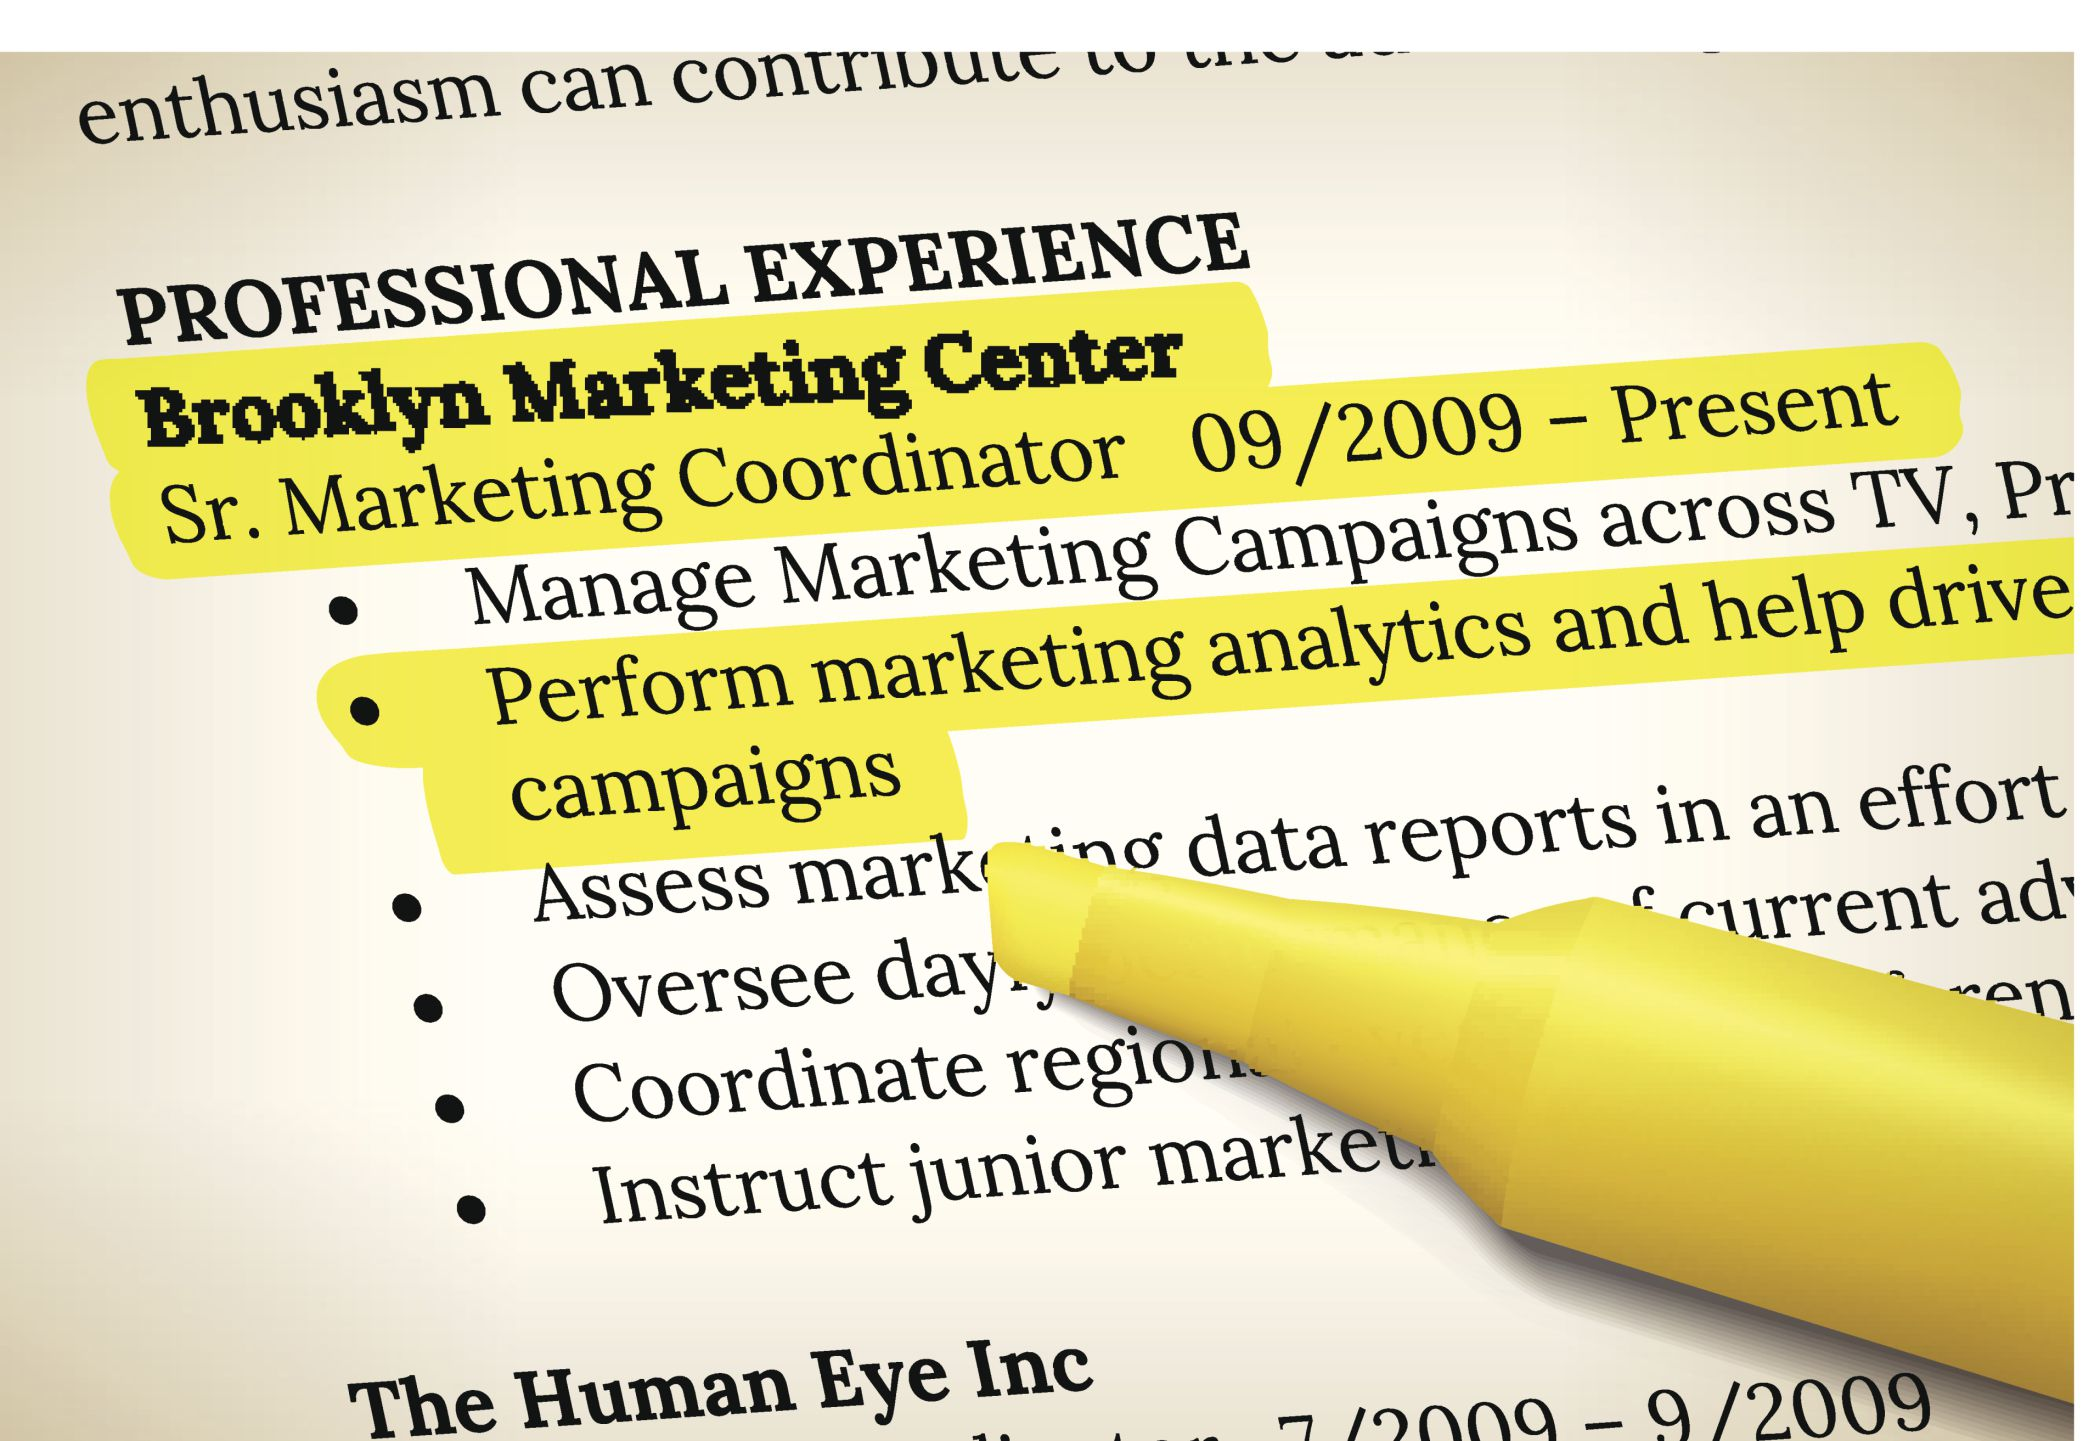 Learn What to Include in the Experience Section of Your Resume